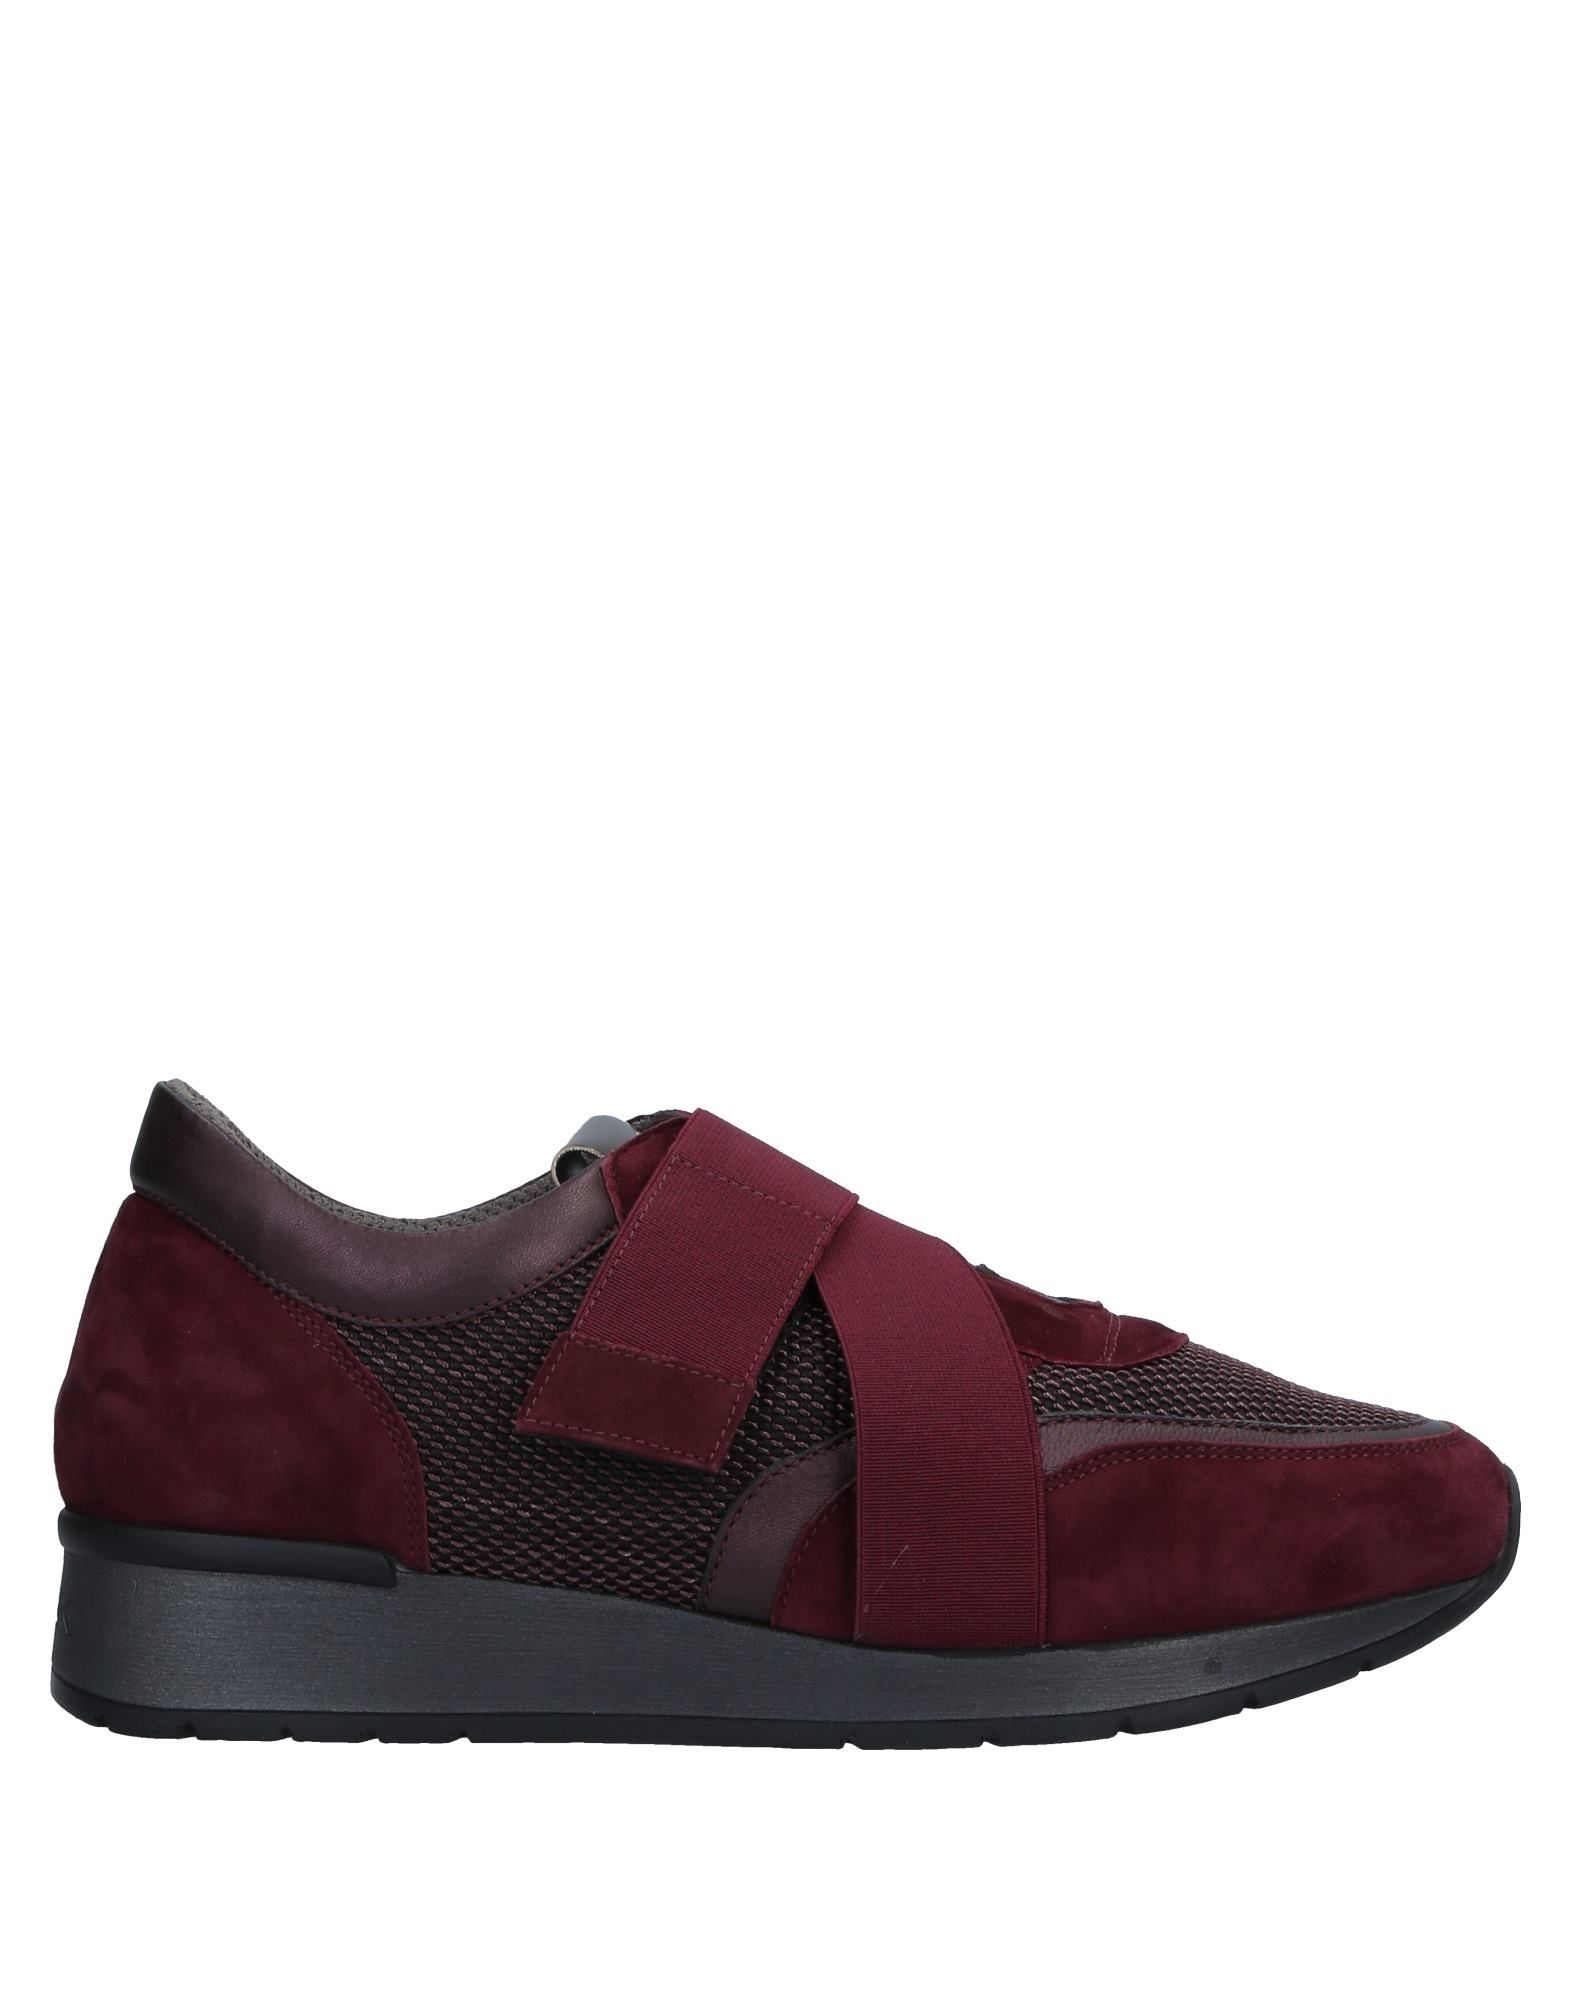 Sneakers Walk By Melluso - Donna - Melluso 11536388UH 2870c9